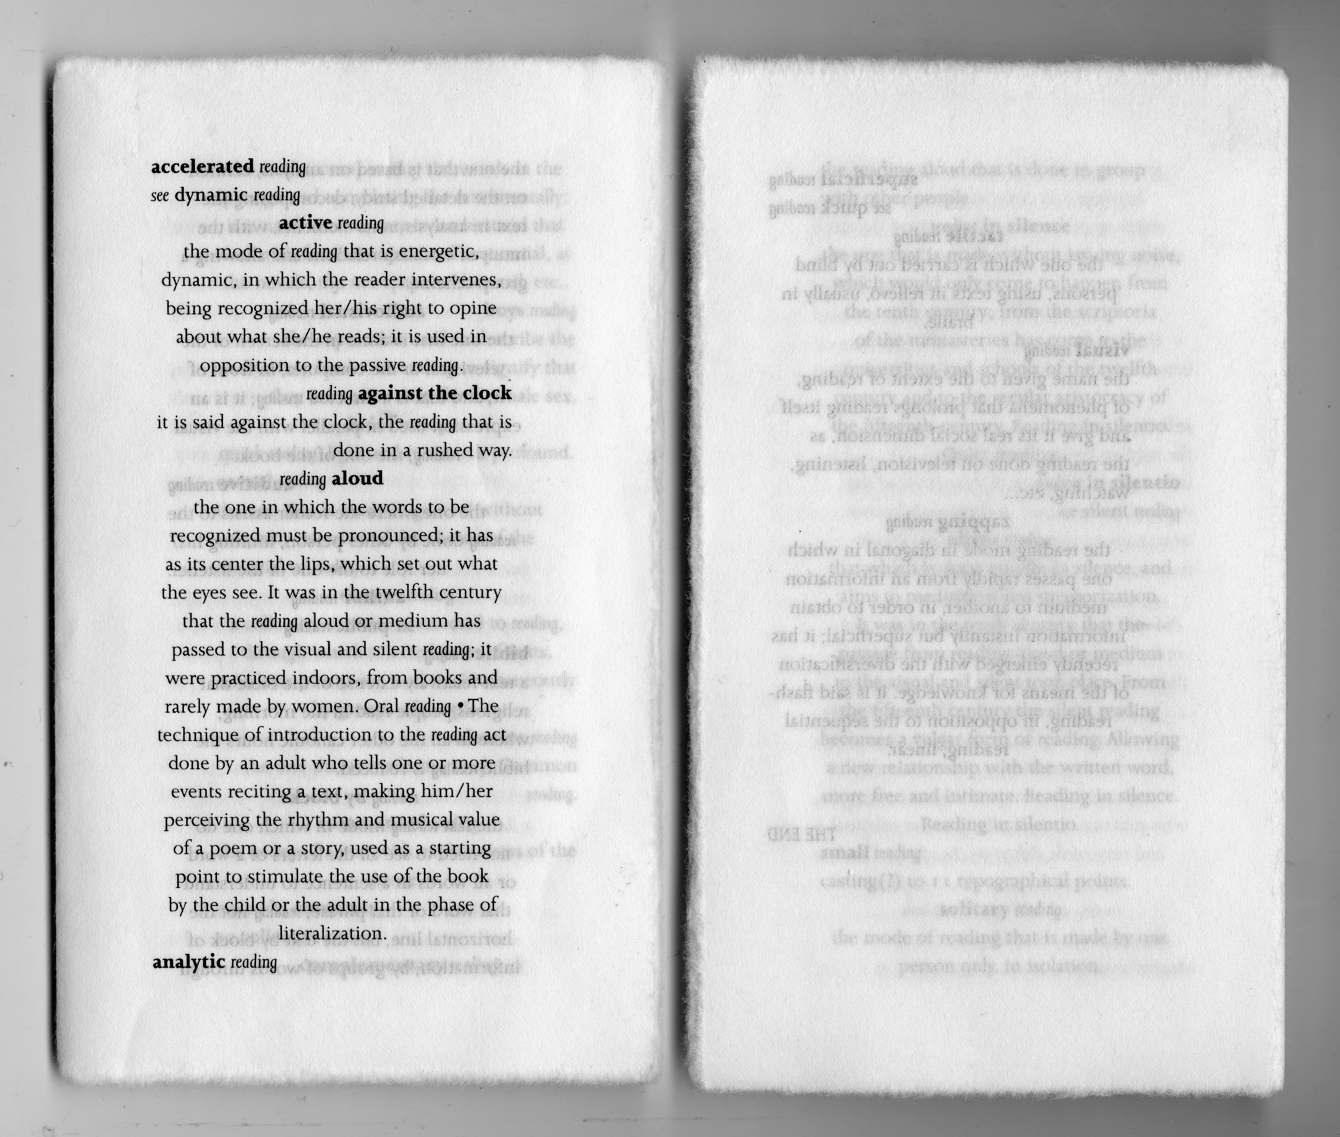 A mini dictionary of reading,printed in rice paper, the edges were turned apart making it difficult to open and read. Creating a sort of friction, such as reading can be. This piece is part of the exhibition KORO's «Ephemerality – A Permanent Collection» at KMD (Faculty for art, music and design, University of Bergen).